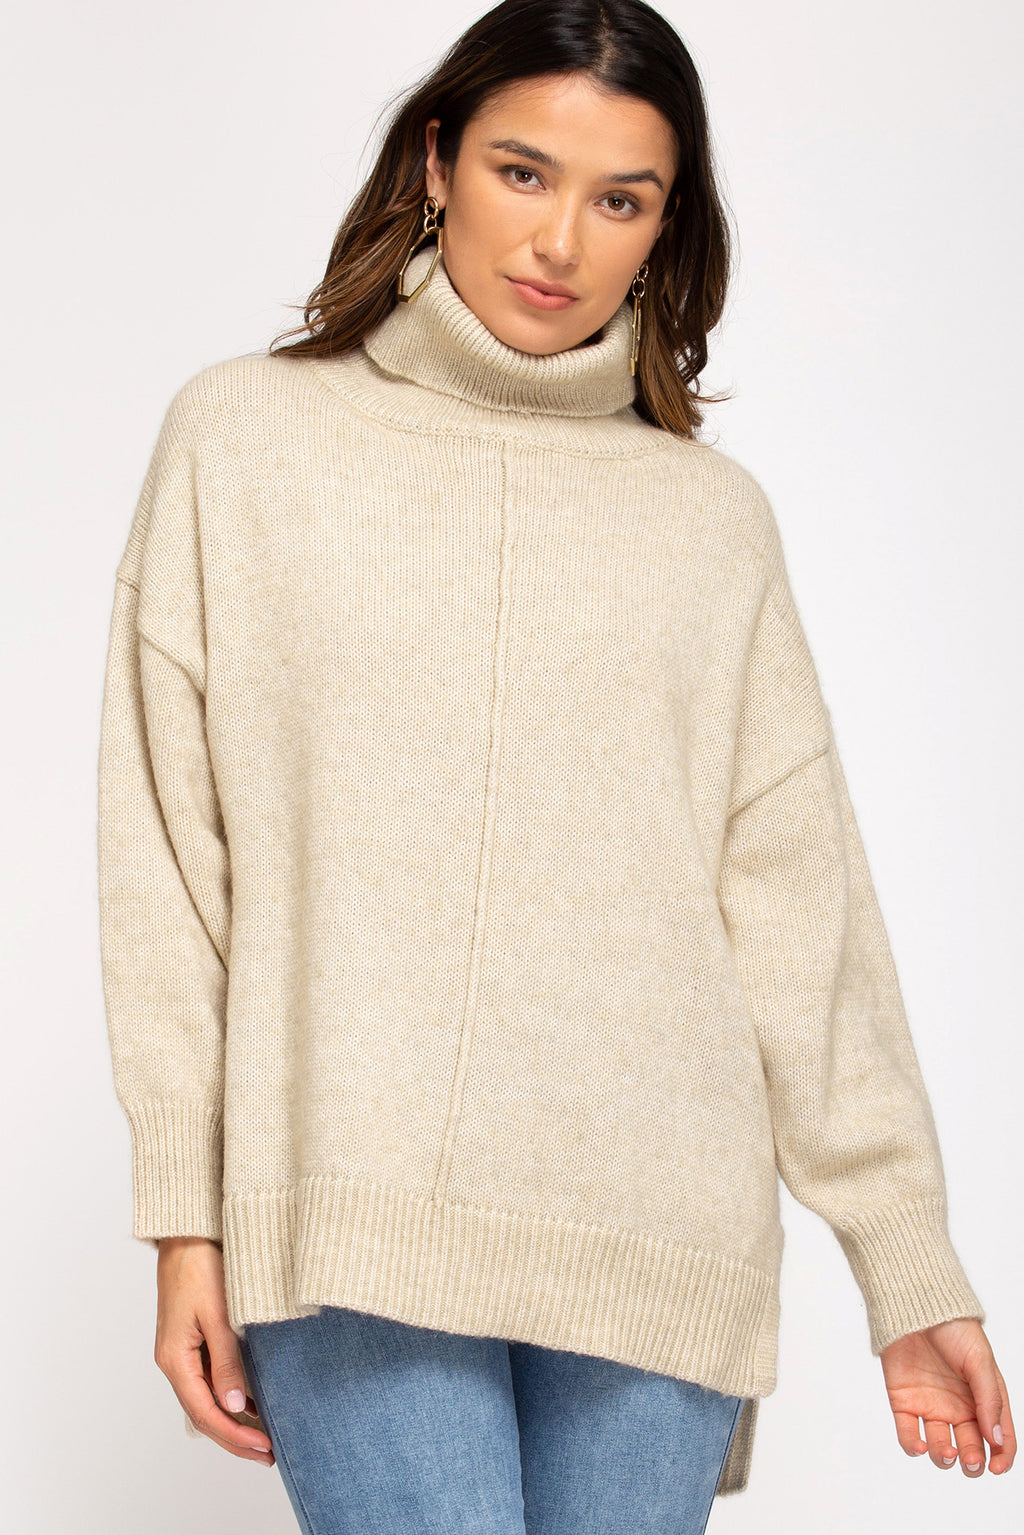 Nola Turtleneck Sweater